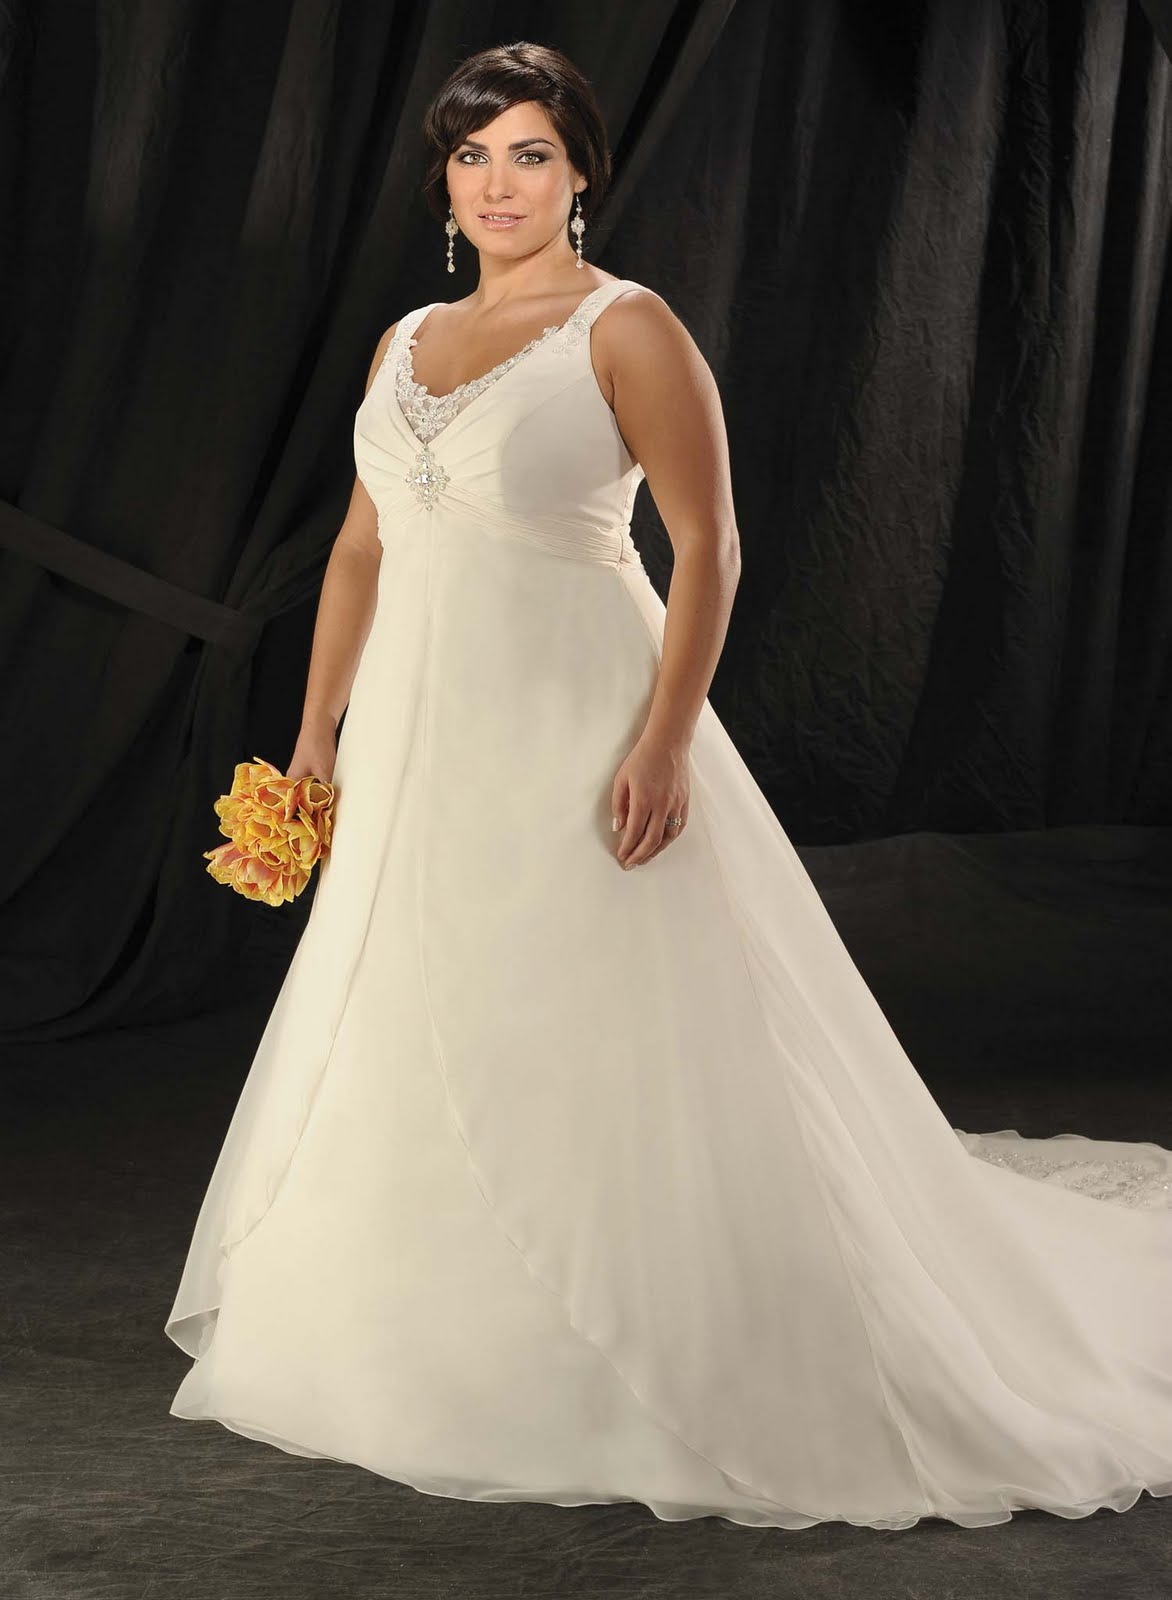 Chiffon wedding gown and